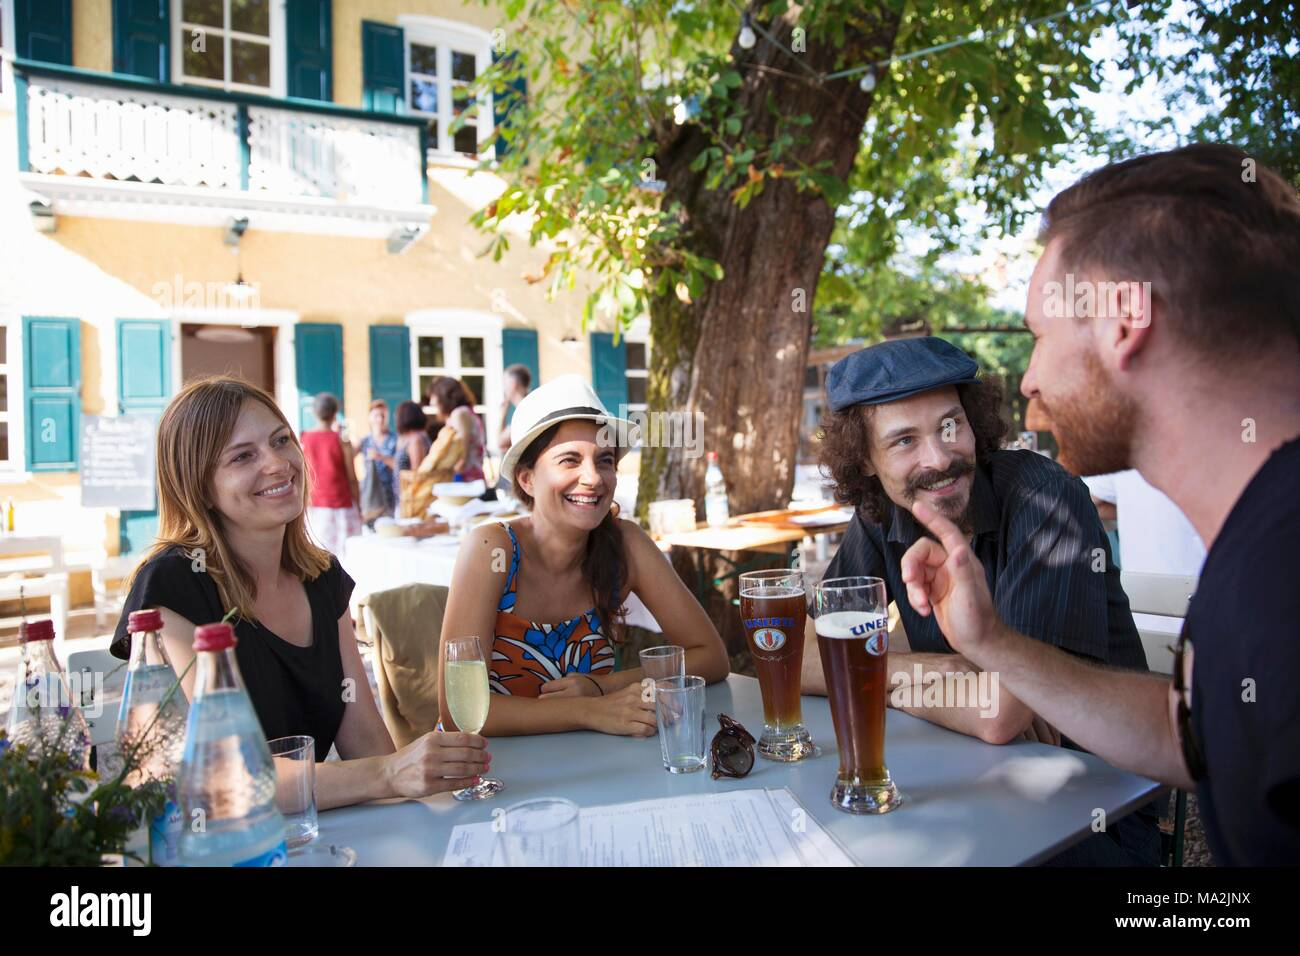 Guests in the Fischmeister's beer garden, Münsing, Upper Bavaria - Stock Image